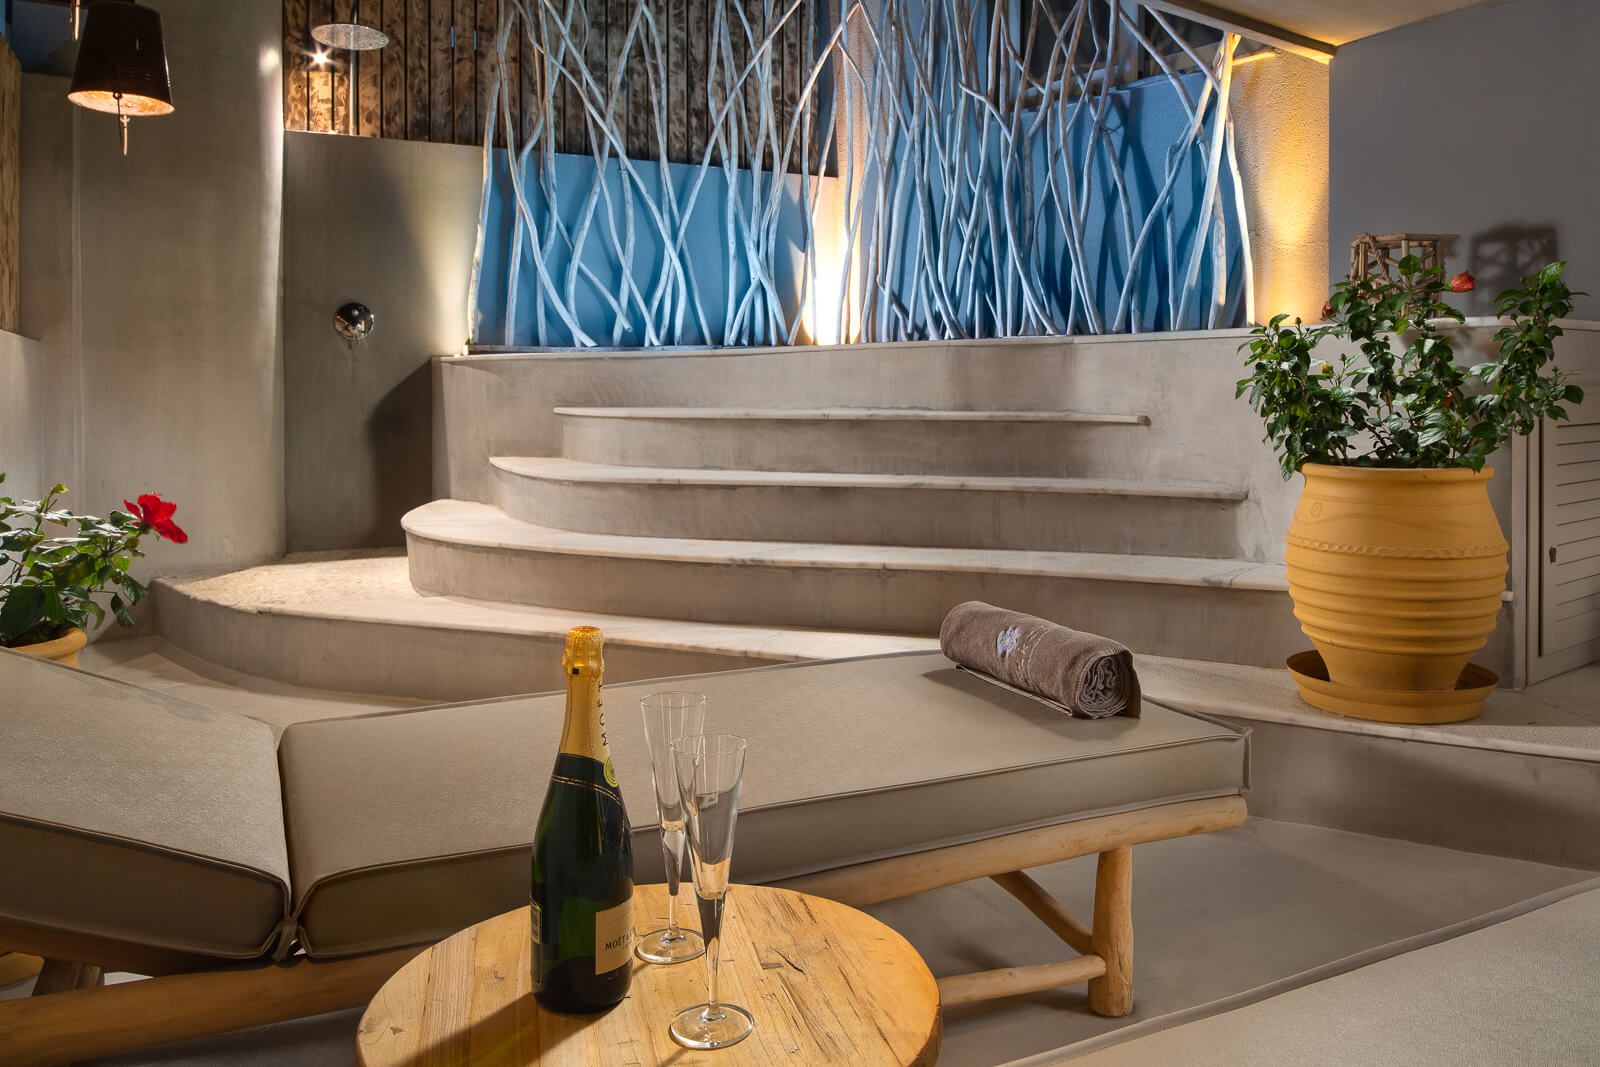 Iviskos-Suite-Terrace-with-Private-Hot-Tub-Elakati-Hotel-in-Rhodes-Greece